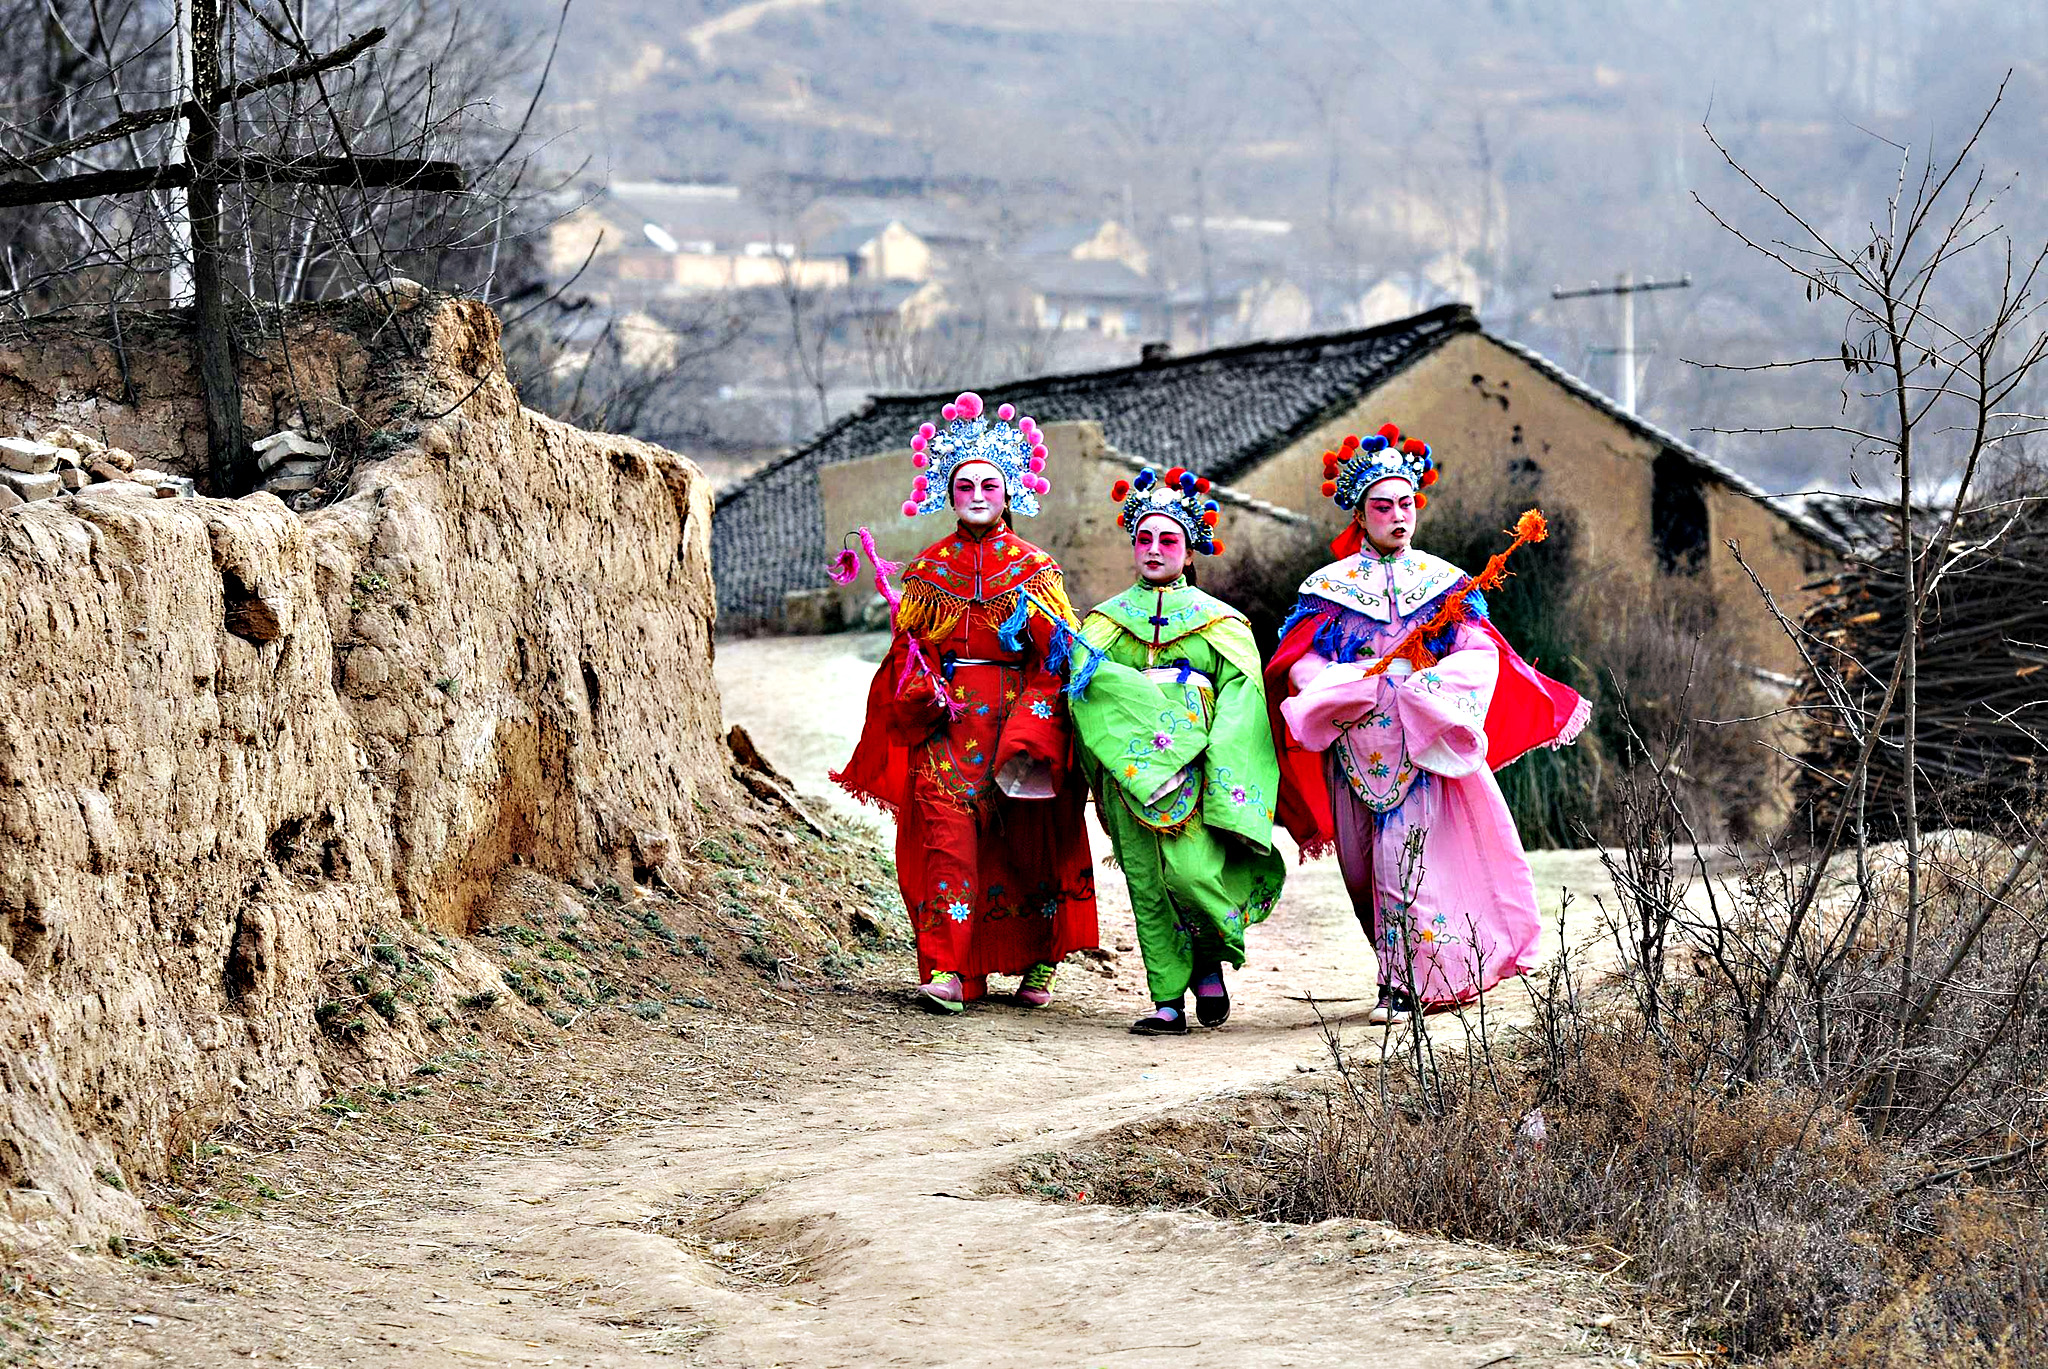 Girls dressed in traditional costumes and holding props walk before a performance in Longxian county, Shaanxi province. The children and villagers wore make-up and traditional costumes as they paraded around the village as part of the Chinese Lunar New Year celebration